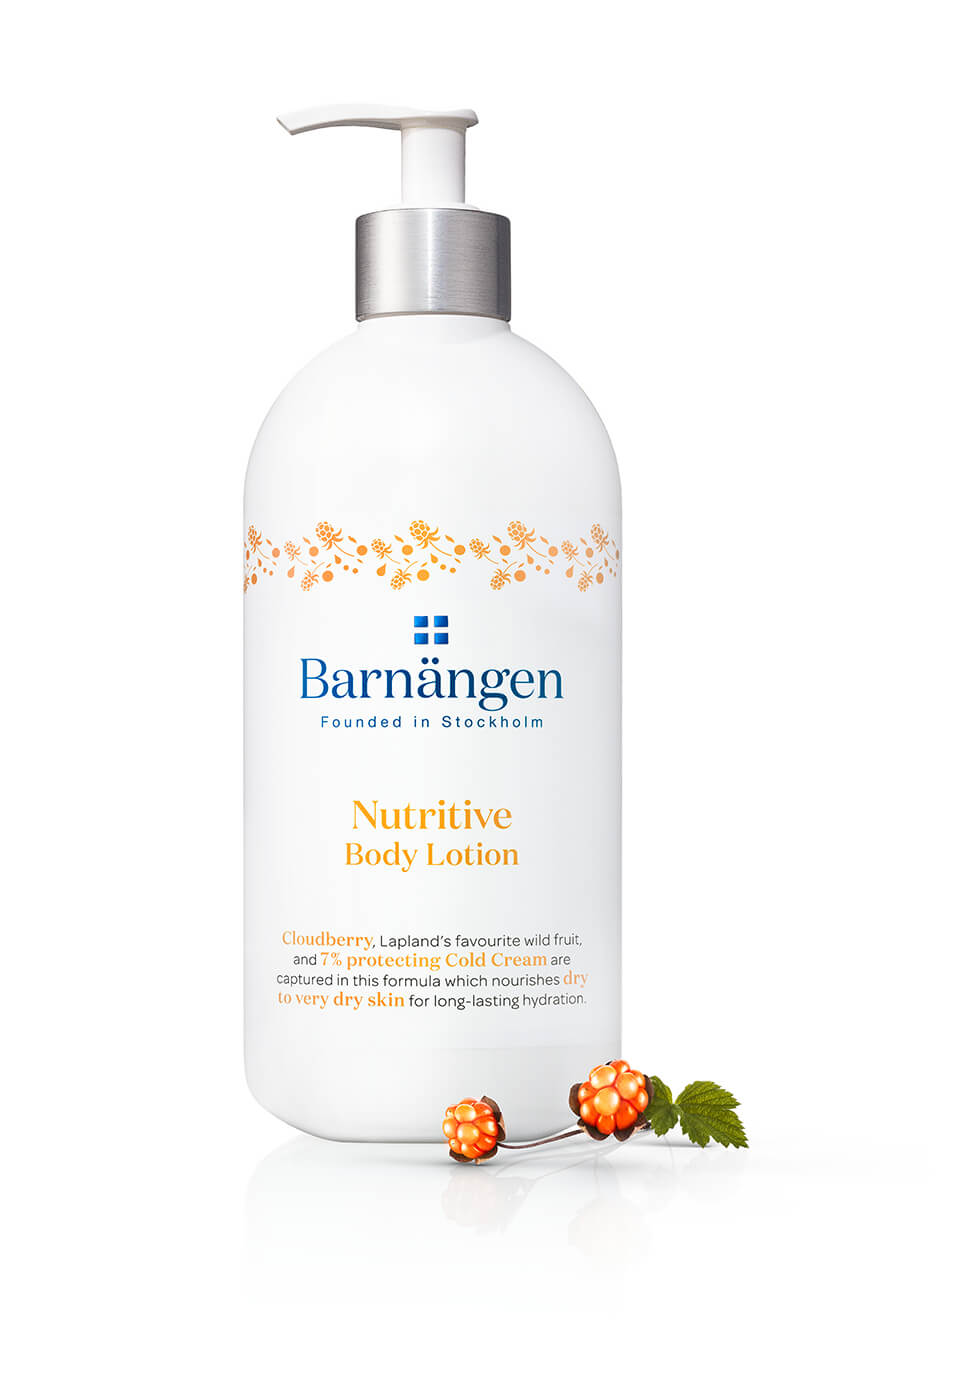 barnangen_com_nordic_care_nutritive_body_lotion_970x1400